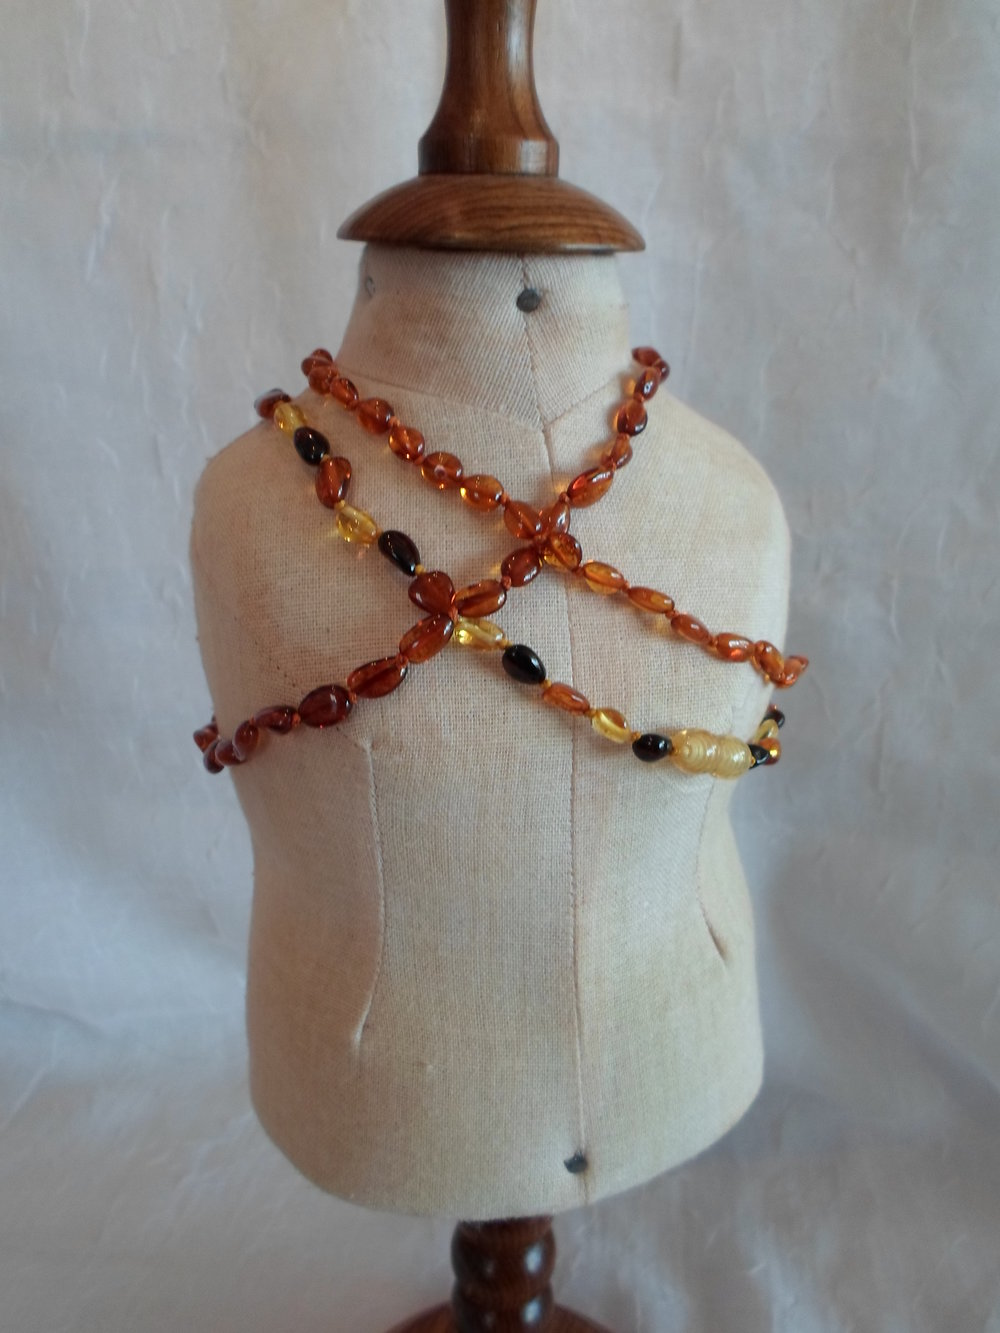 Amber Teething Necklace for Baby    $23.00    Wants 1  purchased